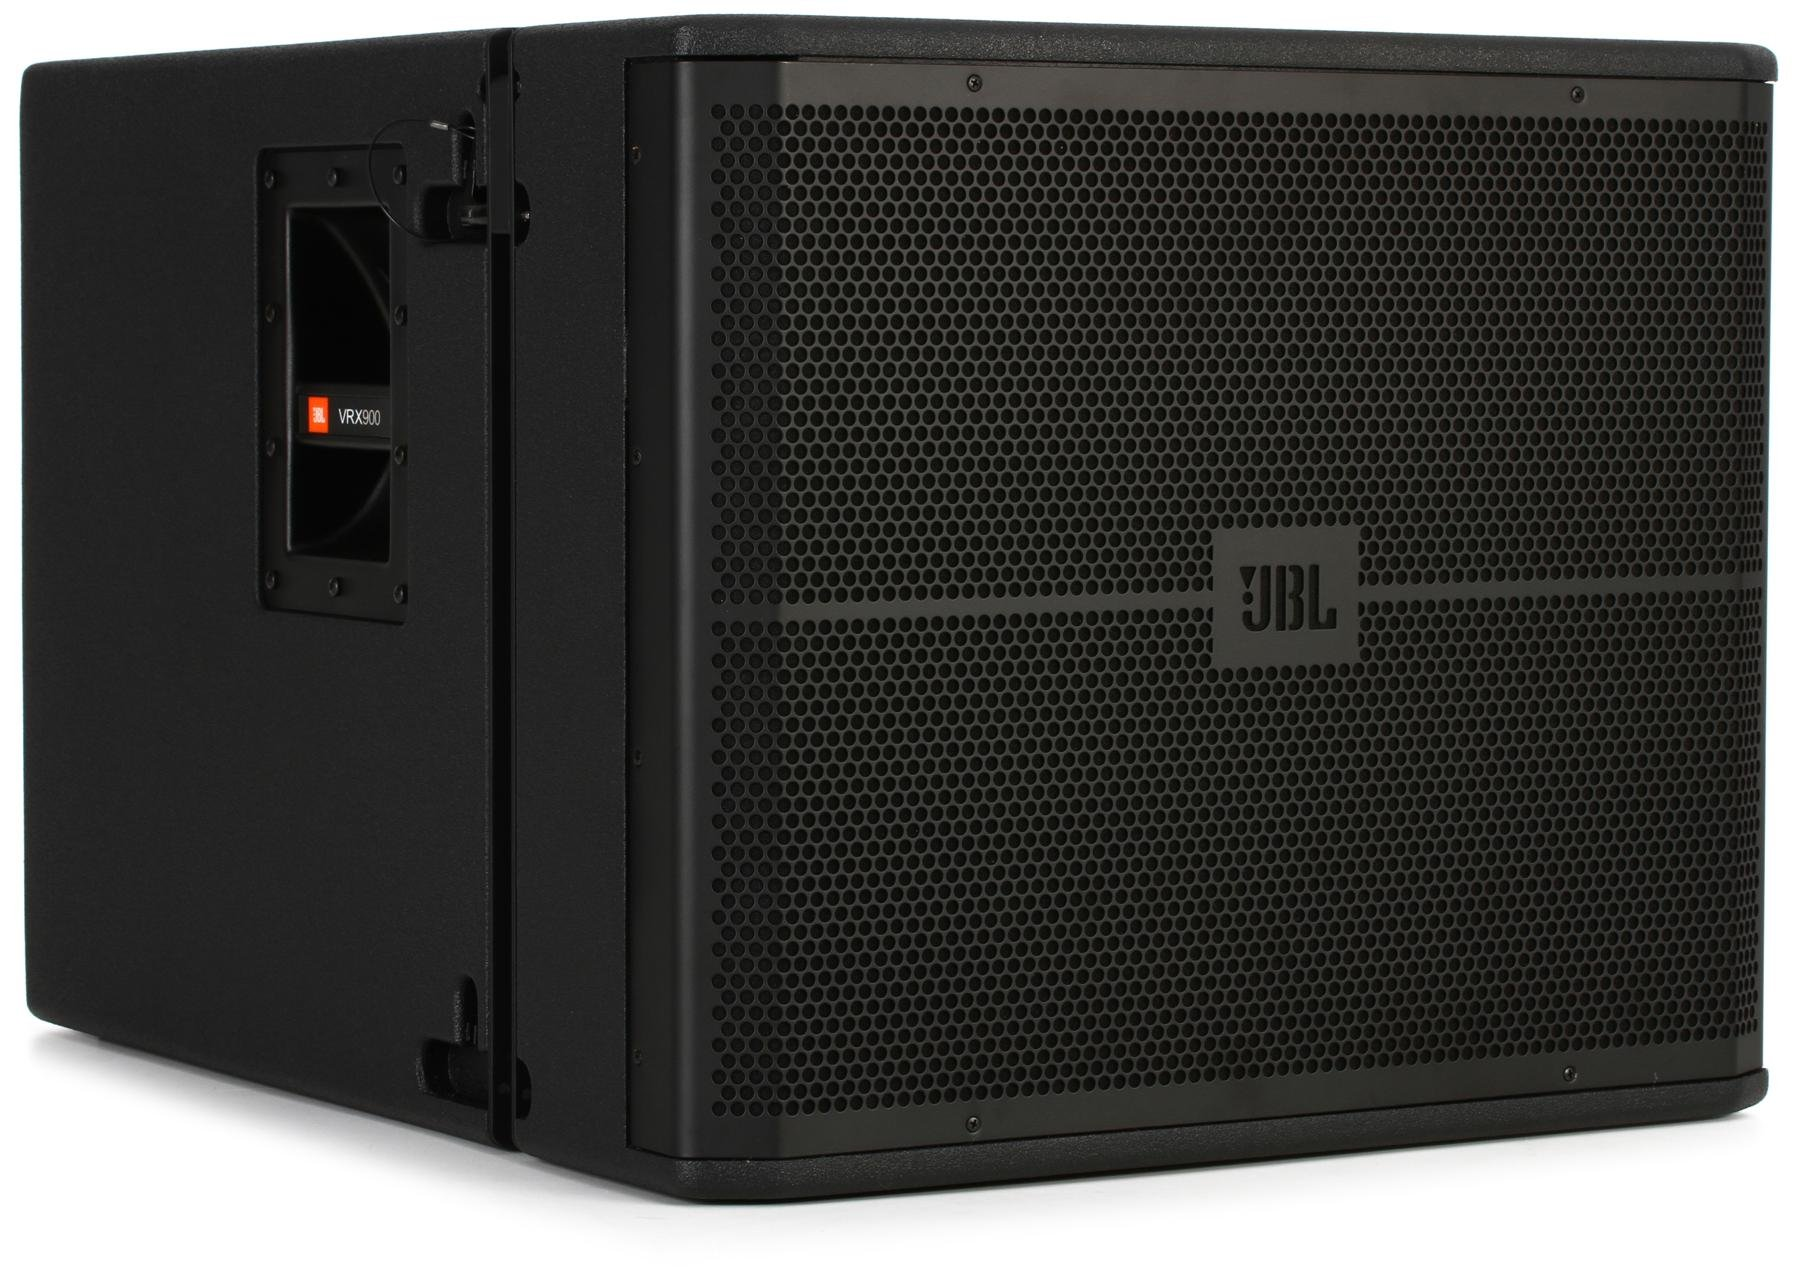 hight resolution of jbl vrx918s 3200w 18 passive subwoofer image 1